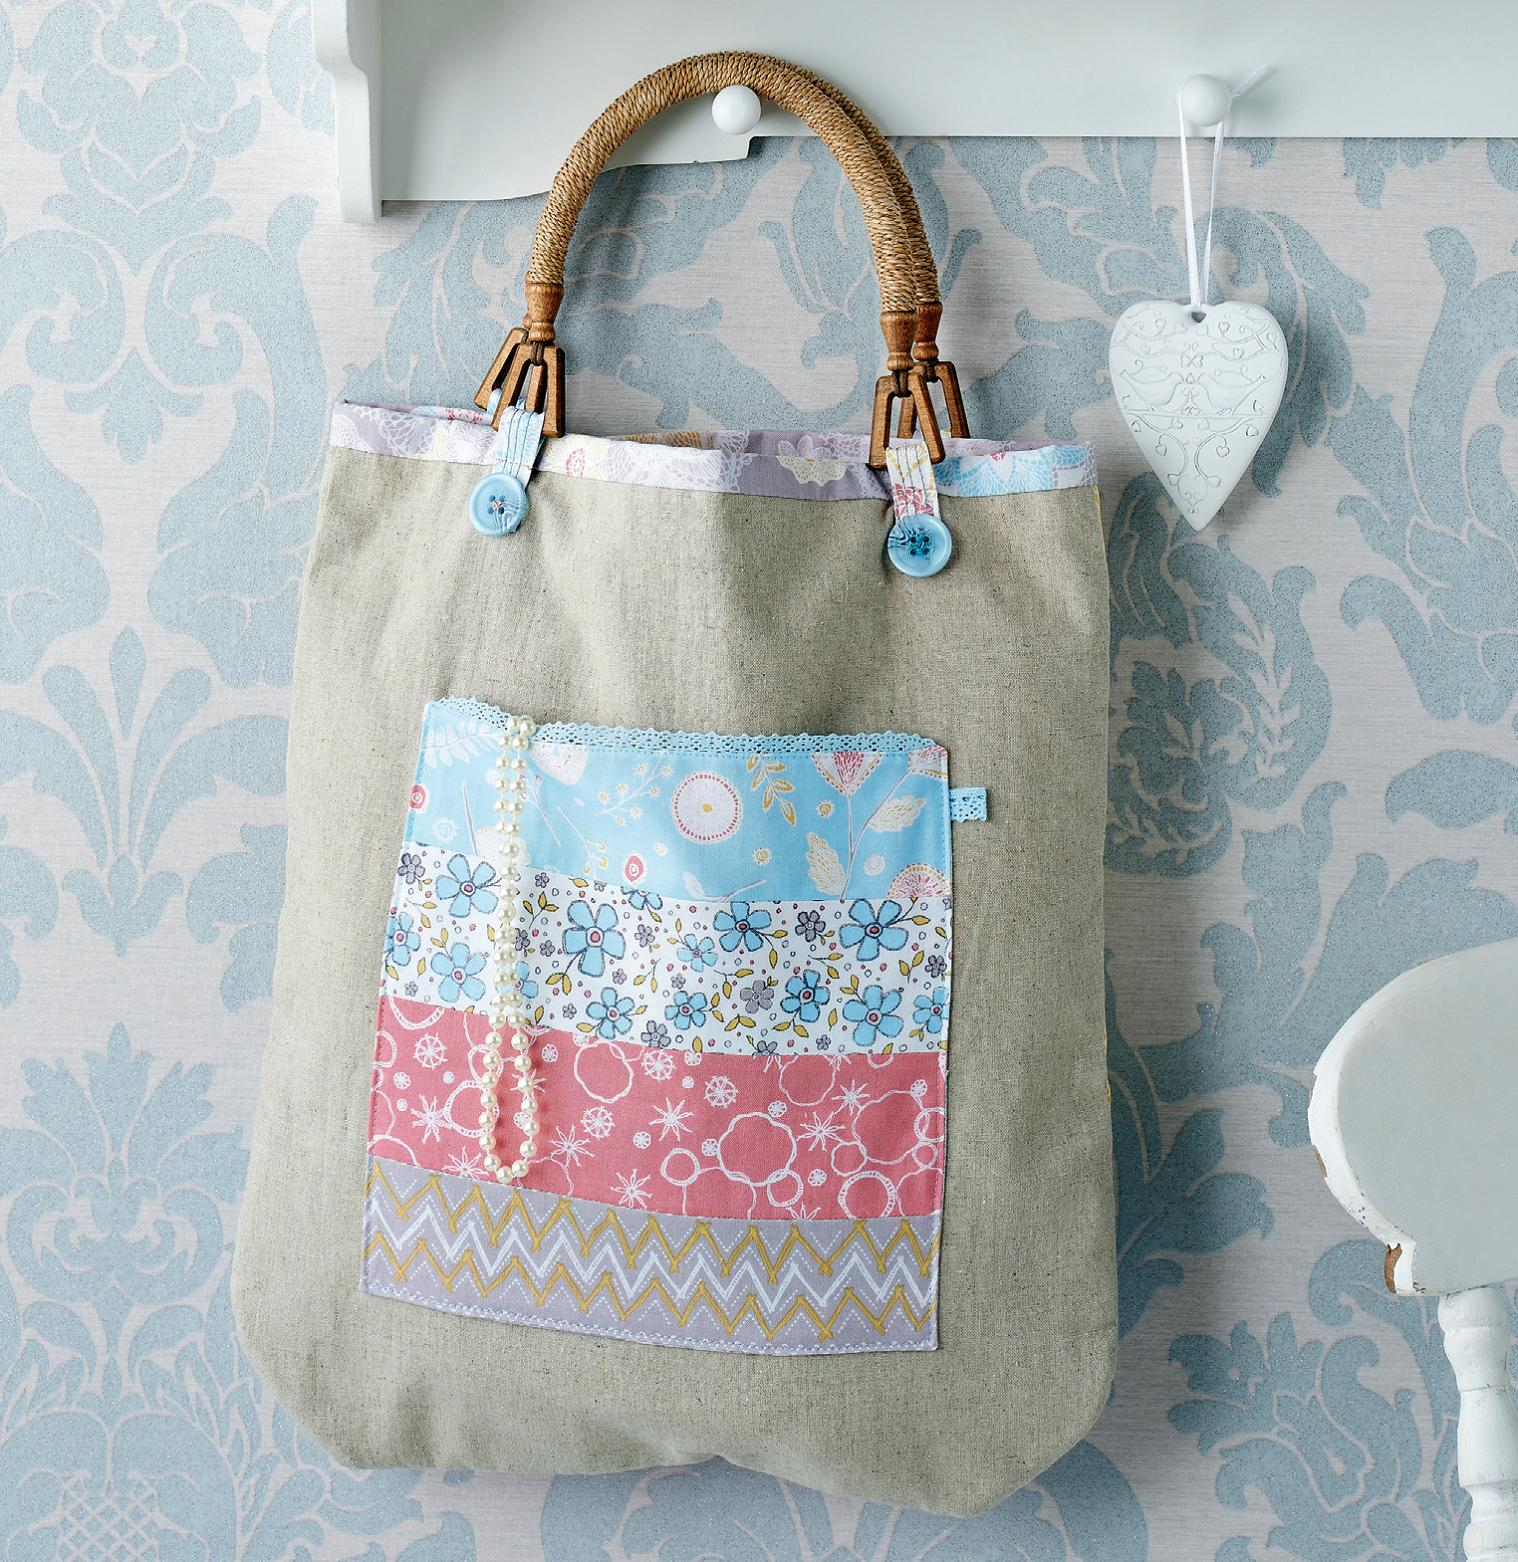 Wooden Handled Linen Tote Bag - Free sewing patterns - Sew Magazine